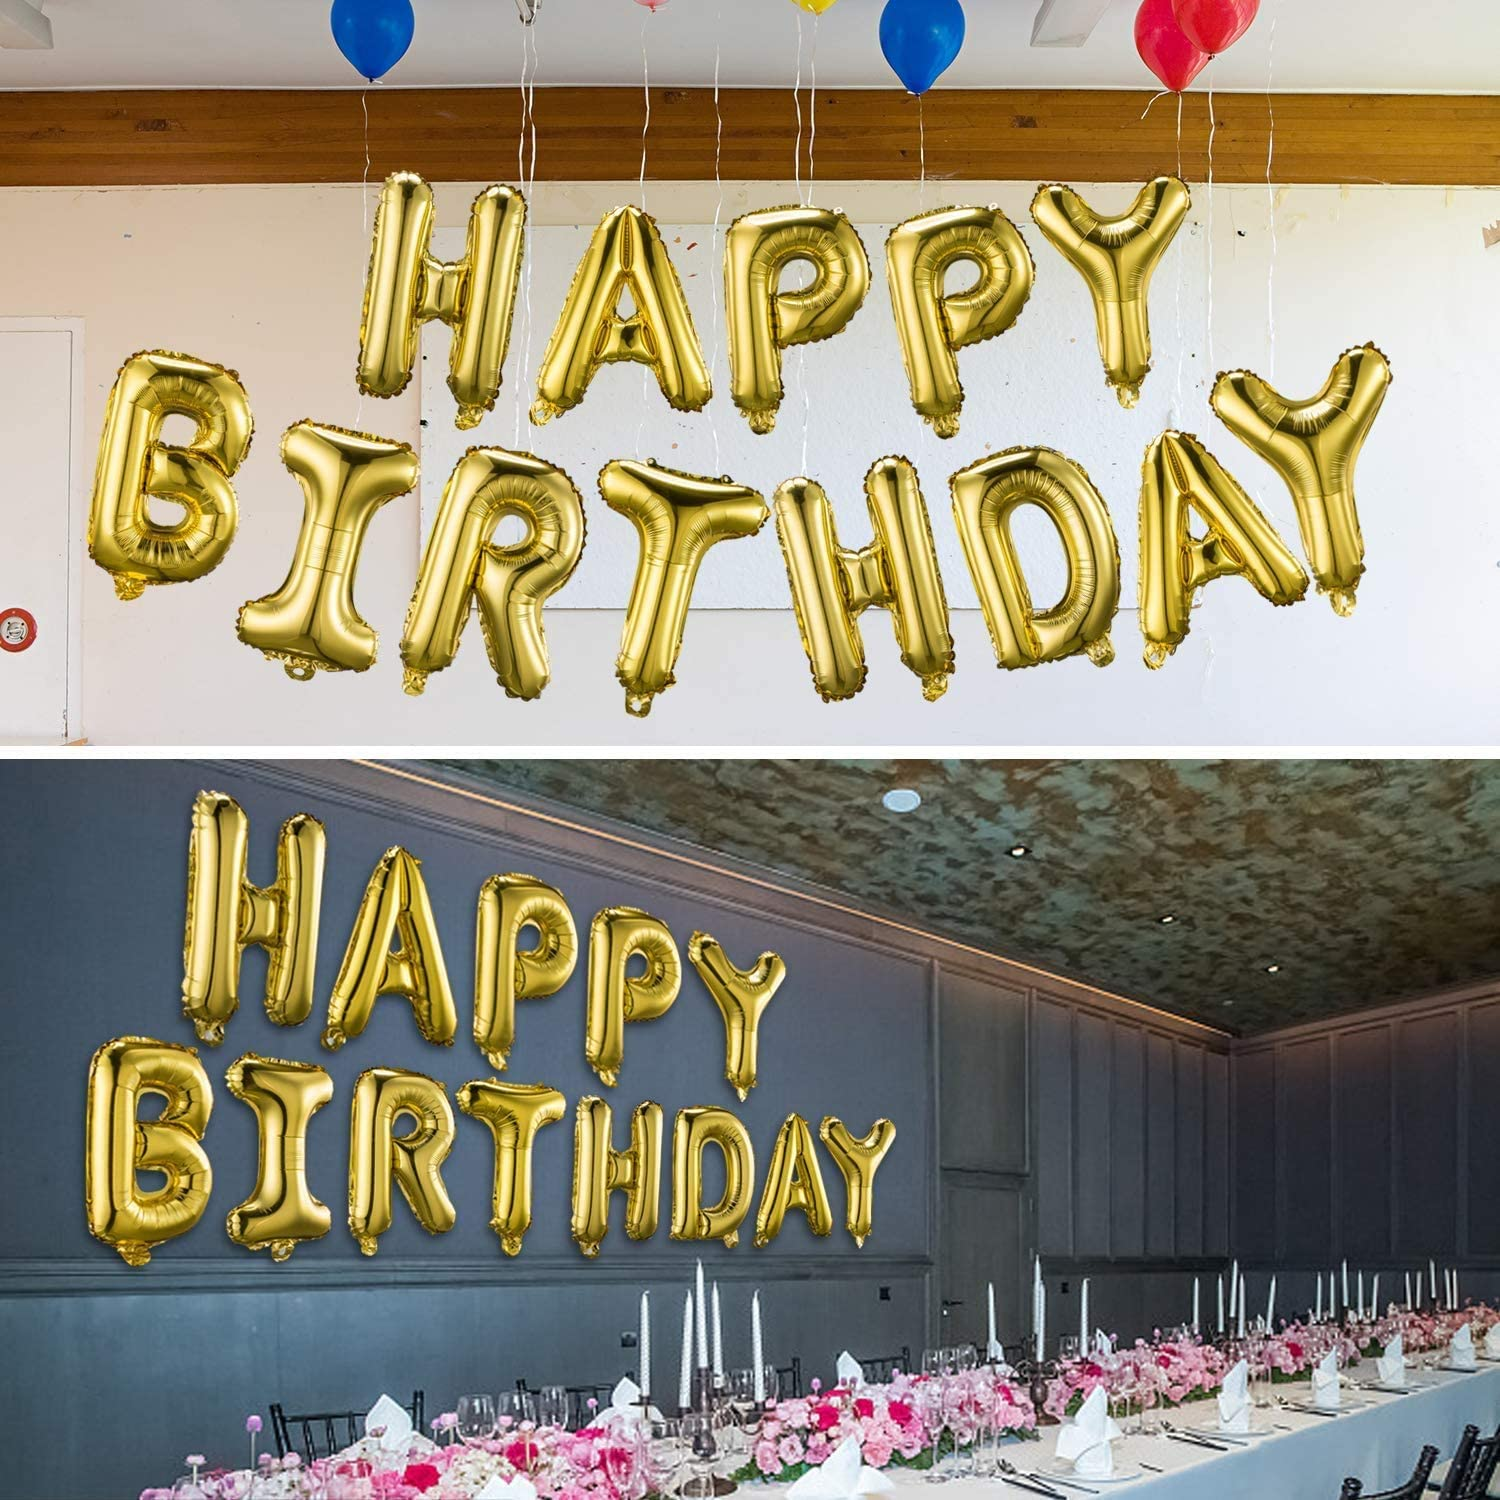 Inflatable Party and Event Decor for kids and Adults 16 Inch Aluminum Mylar Foil Letters for Decoration Blue Happy Birthday Balloons Banner Ecofriendly Material Reusable